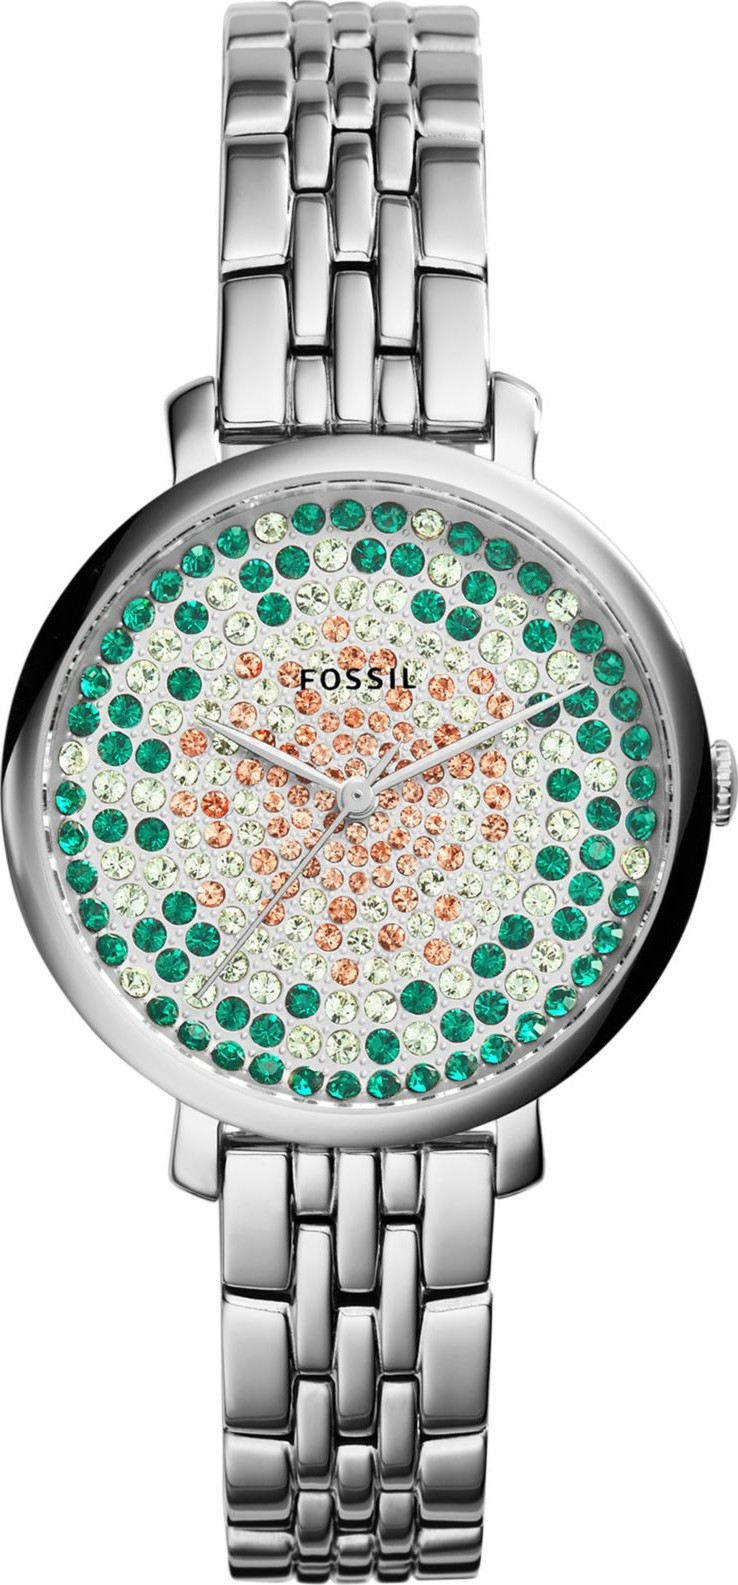 Fossil Analog Display Silver-Tone Quartz Women's Watch 36mm